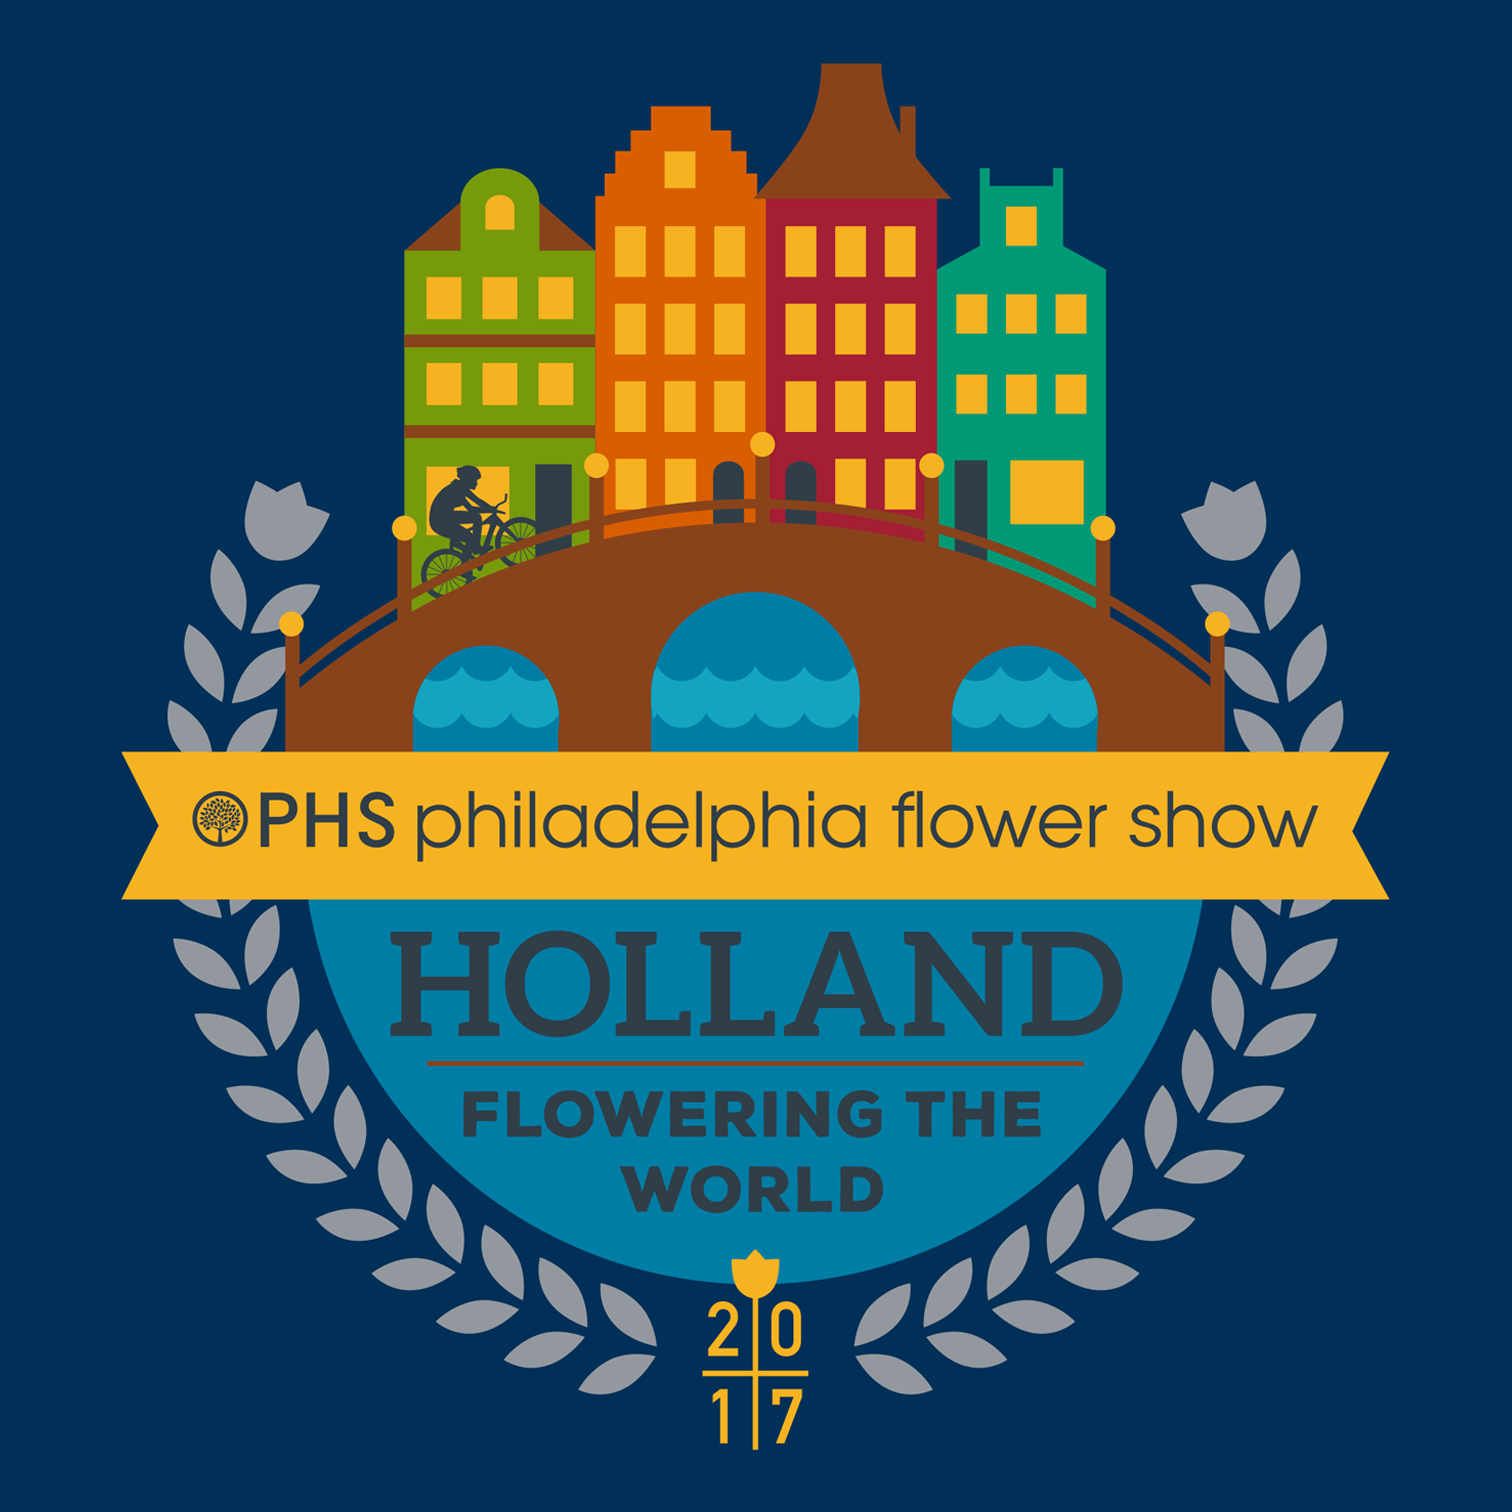 Merchandise designs for the 2017 PHS Philadelphia Flower Show, such as coasters, teddy bears, t-shirts, pins, magnets, mugs, postcards and more. Won gold for Best Overall Merchandise Program and silver for Best Clothing at the International Festivals & Events Association's annual Pinnacle Awards.